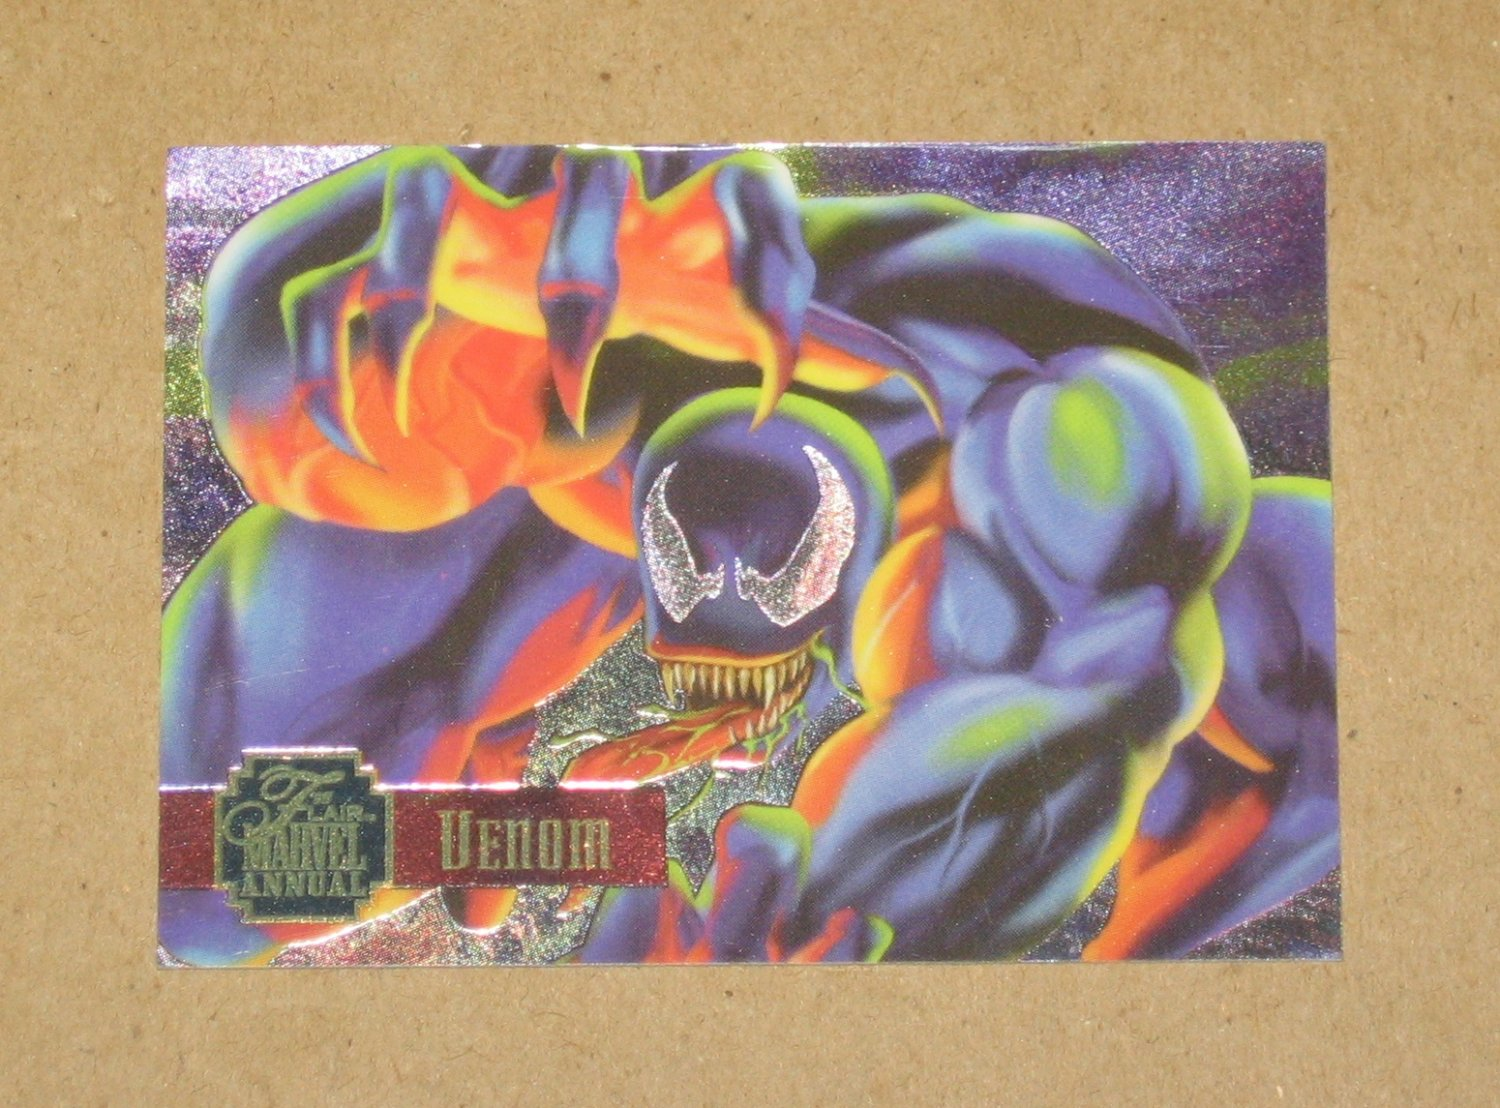 Flair '95 Marvel Annual (Fleer 1995) PowerBlast Card #3- Venom VG